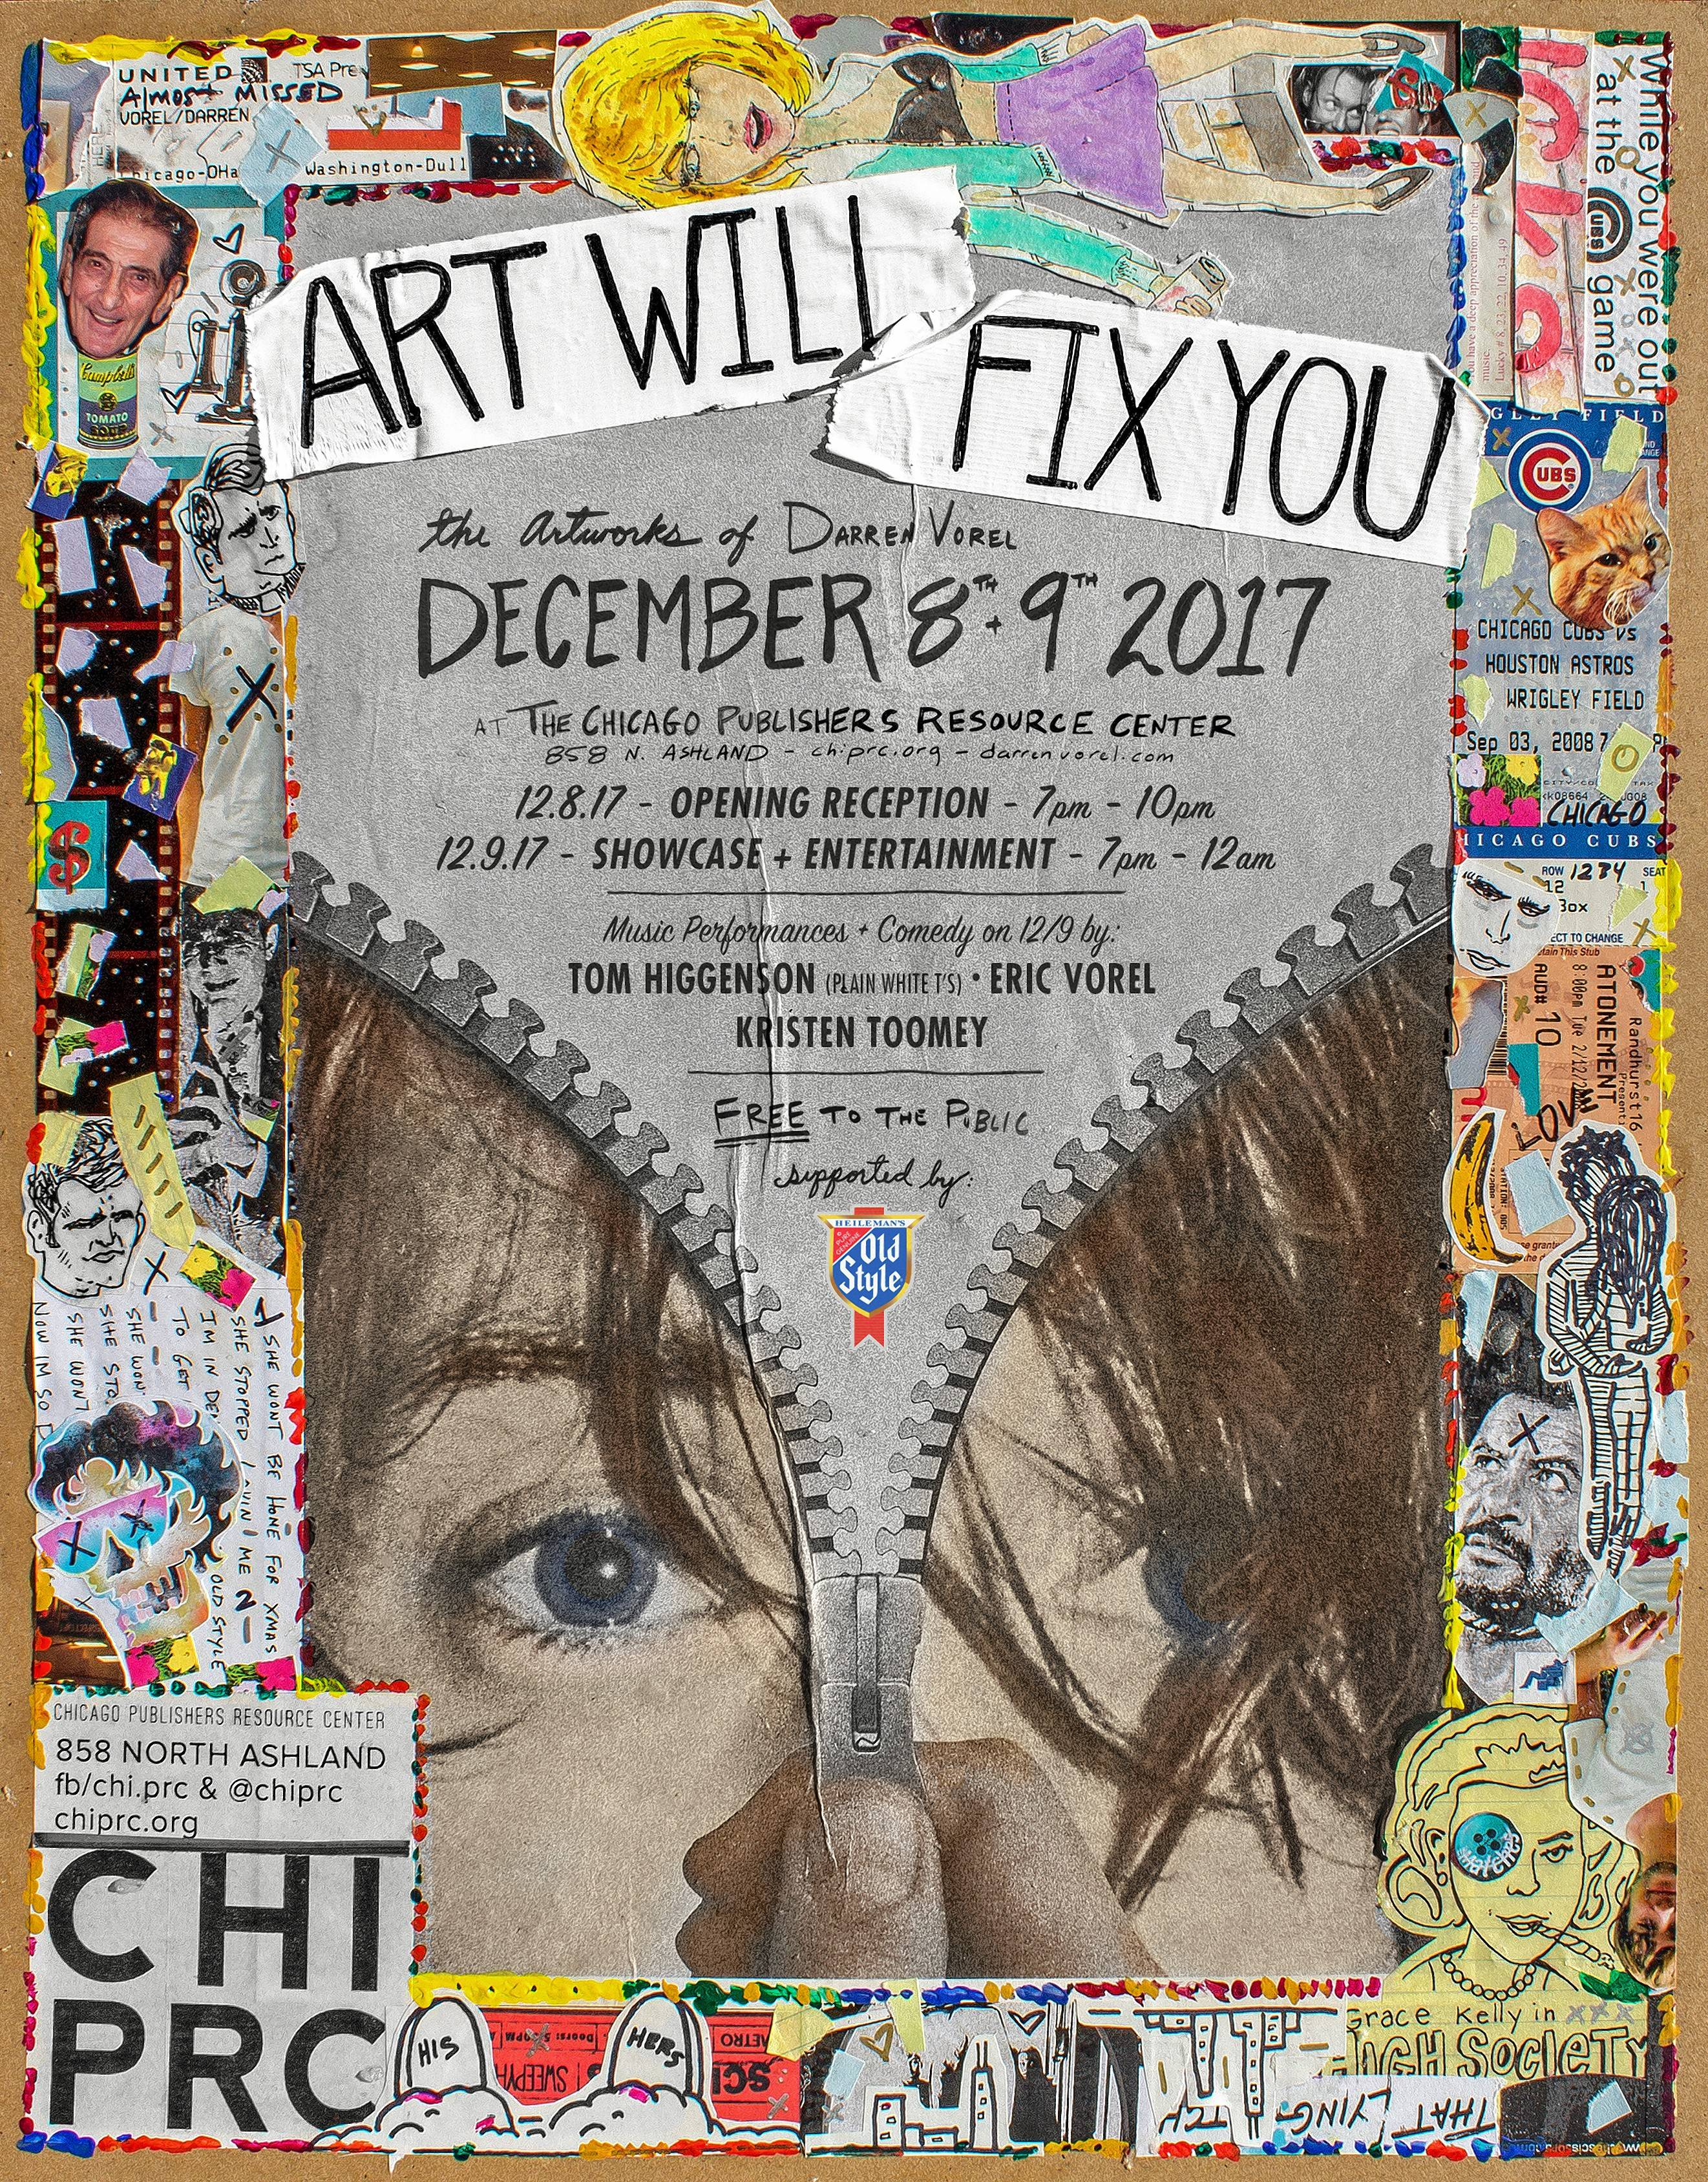 """Art Will Fix You"" Friday and Saturday, Dec. 8-9, will showcase some of Villa Park native Darren Vorel's works."